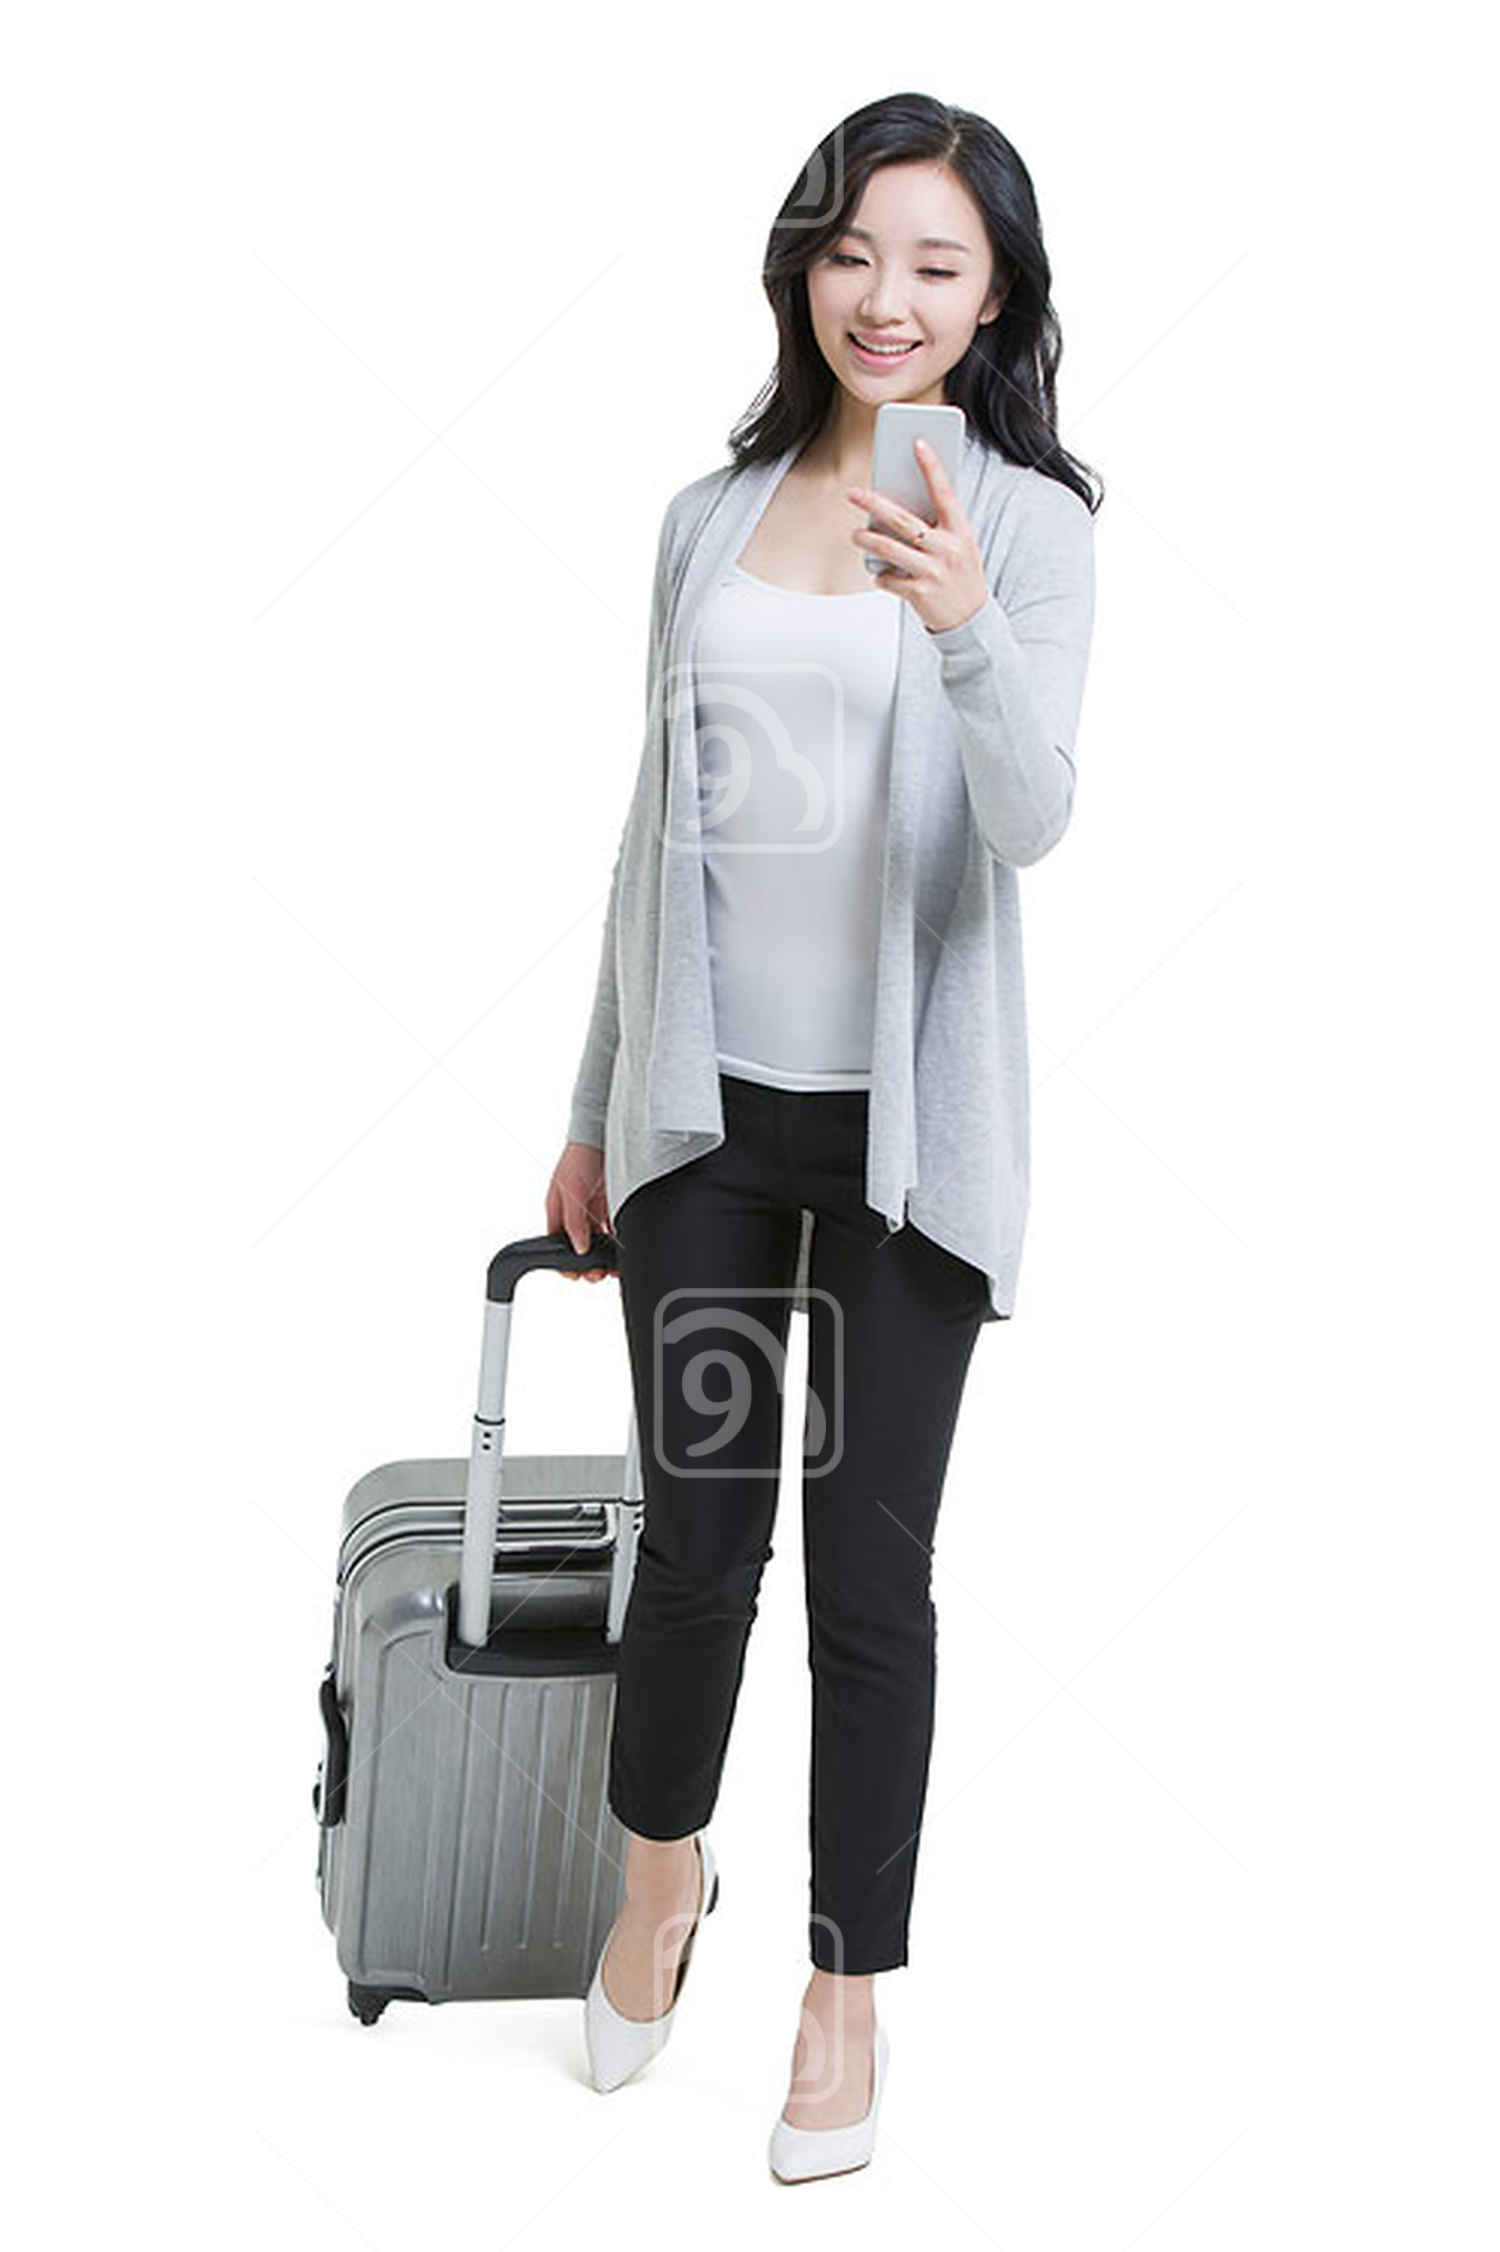 Young Chinese woman with luggage and smart phone